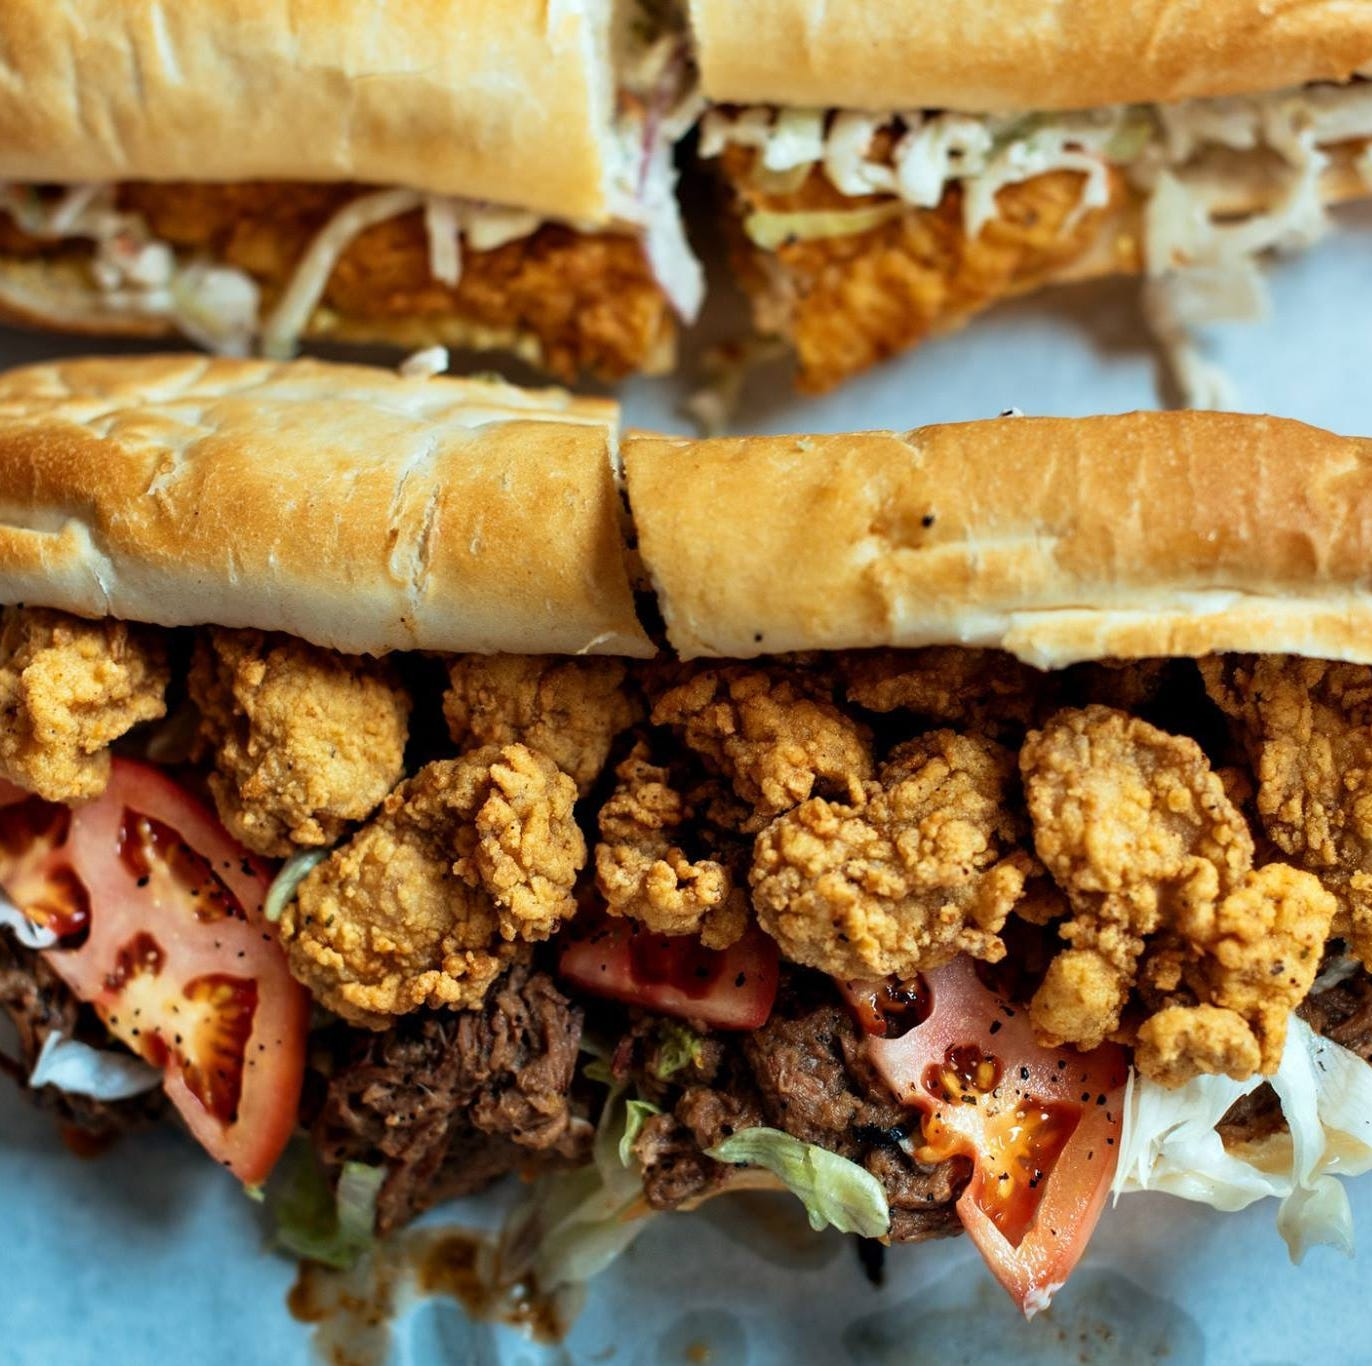 Here's what's on the menu at the 2019 Acadiana Po-Boy Festival